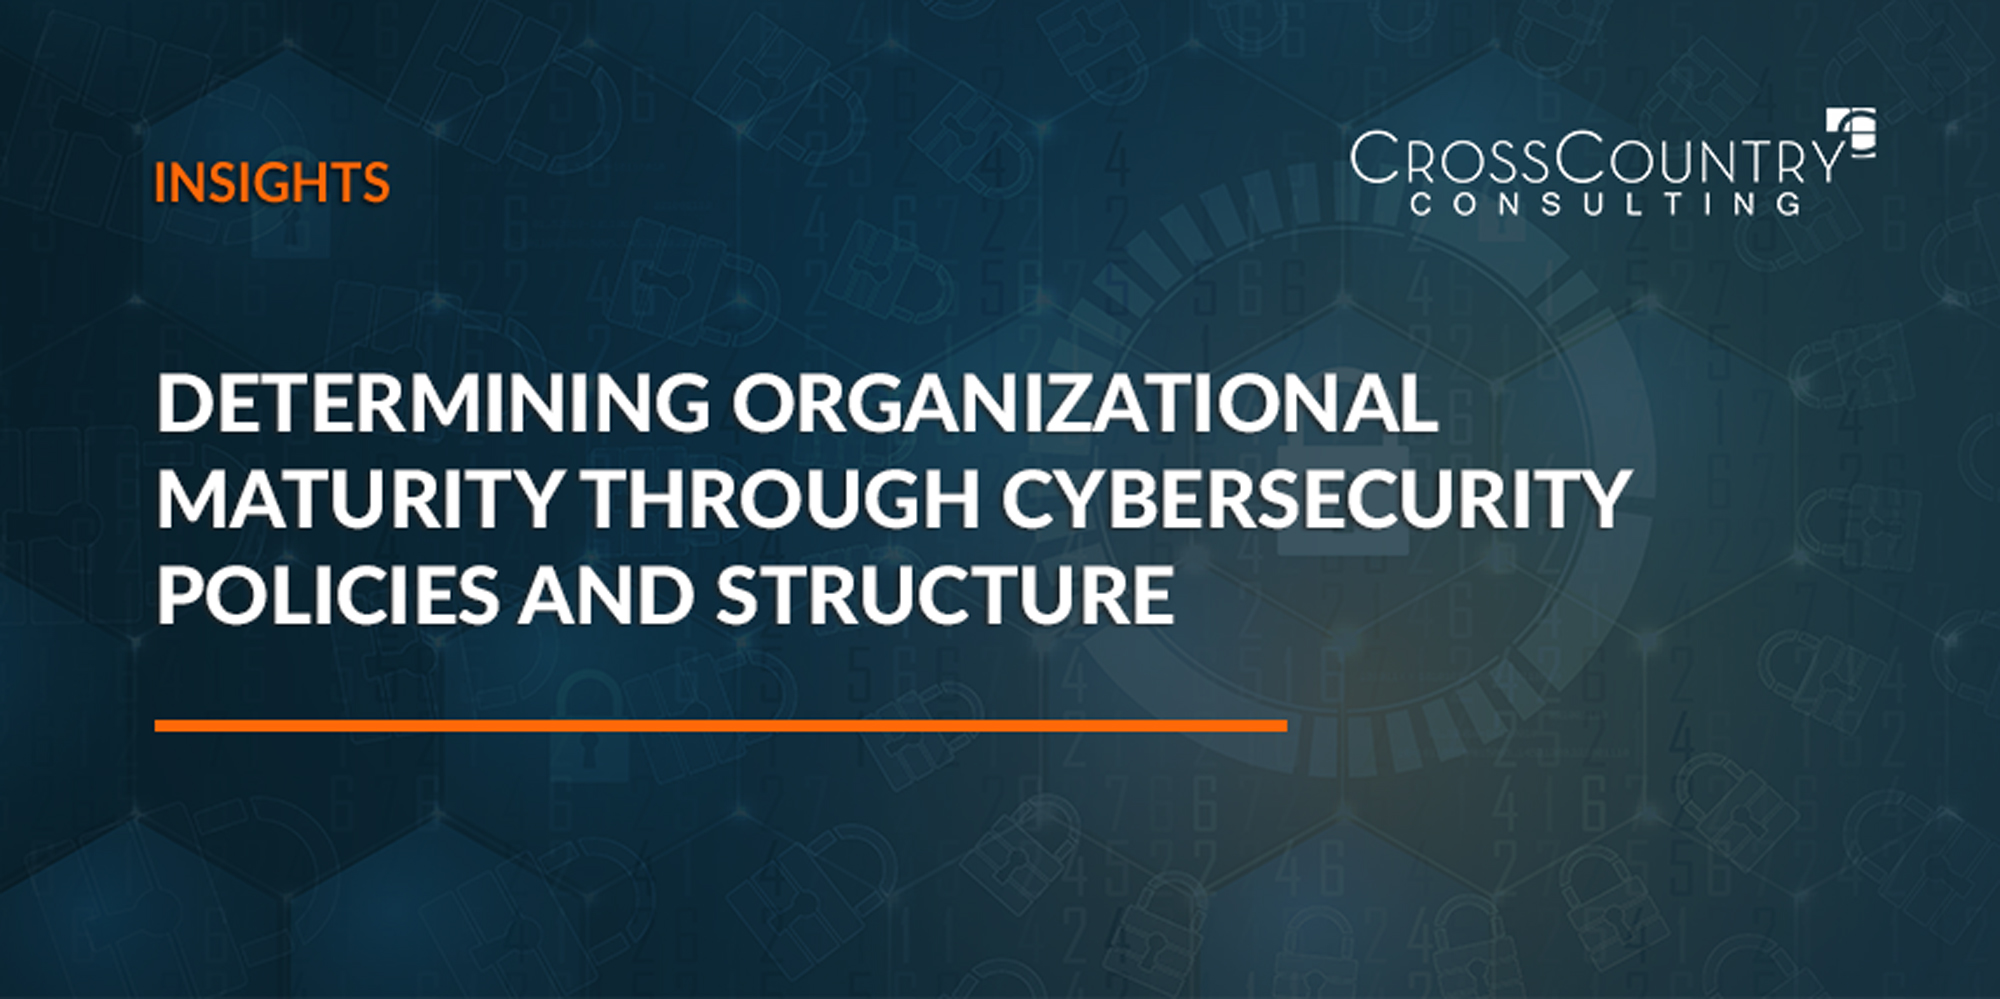 Determining Organizational Maturity through Cybersecurity Policies and Structure